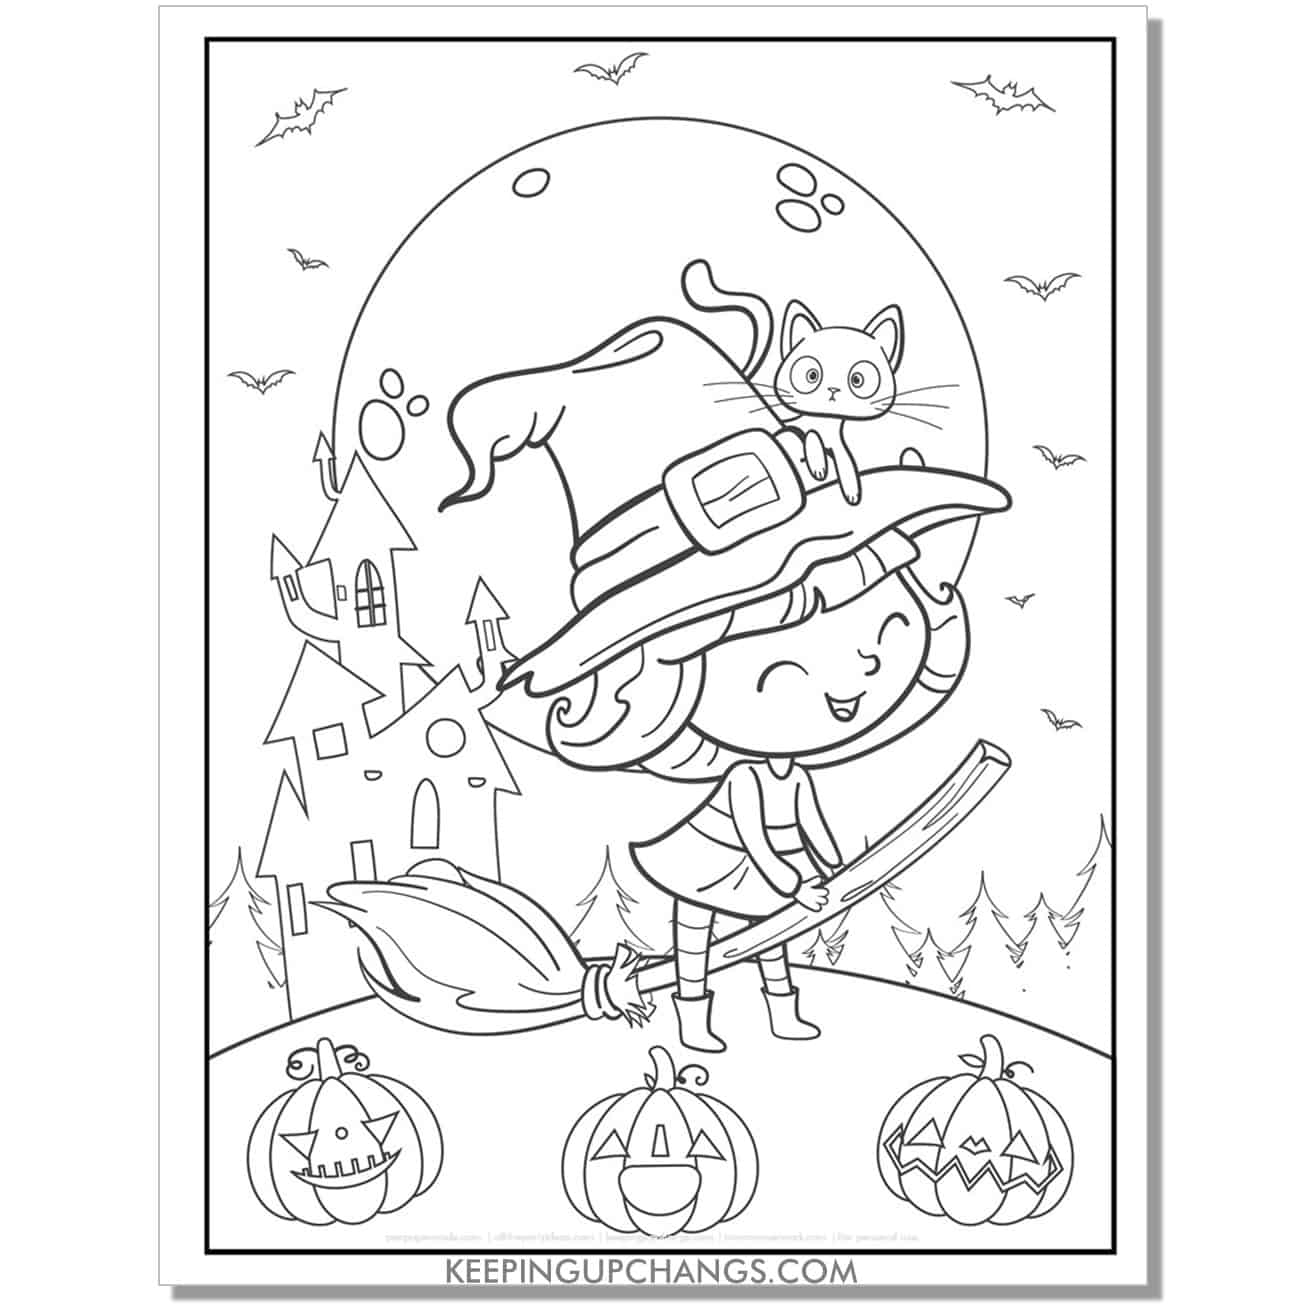 free cute witch full size coloring page for kids with jack o lantern and cat.